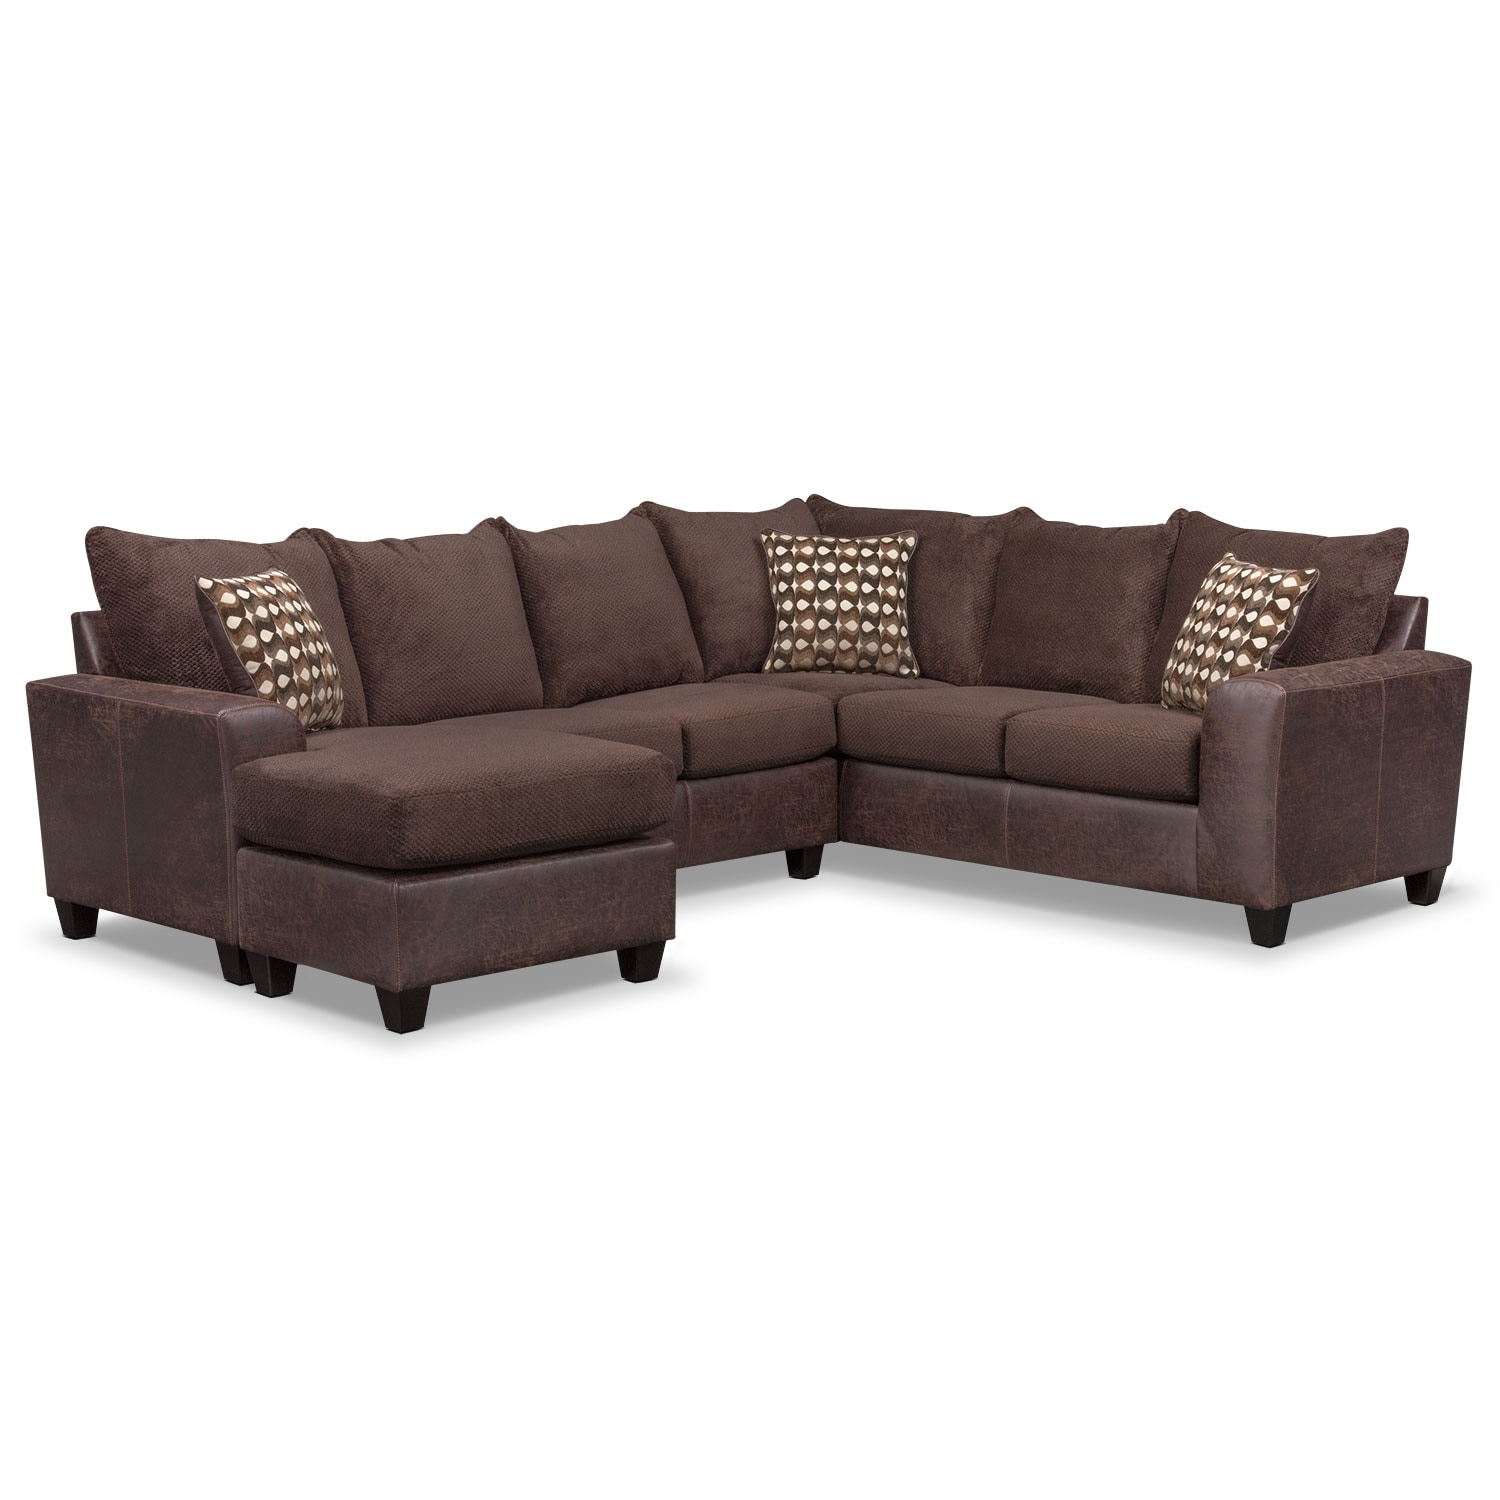 Brando 2 Piece Memory Foam Sleeper Sectional Chocolate